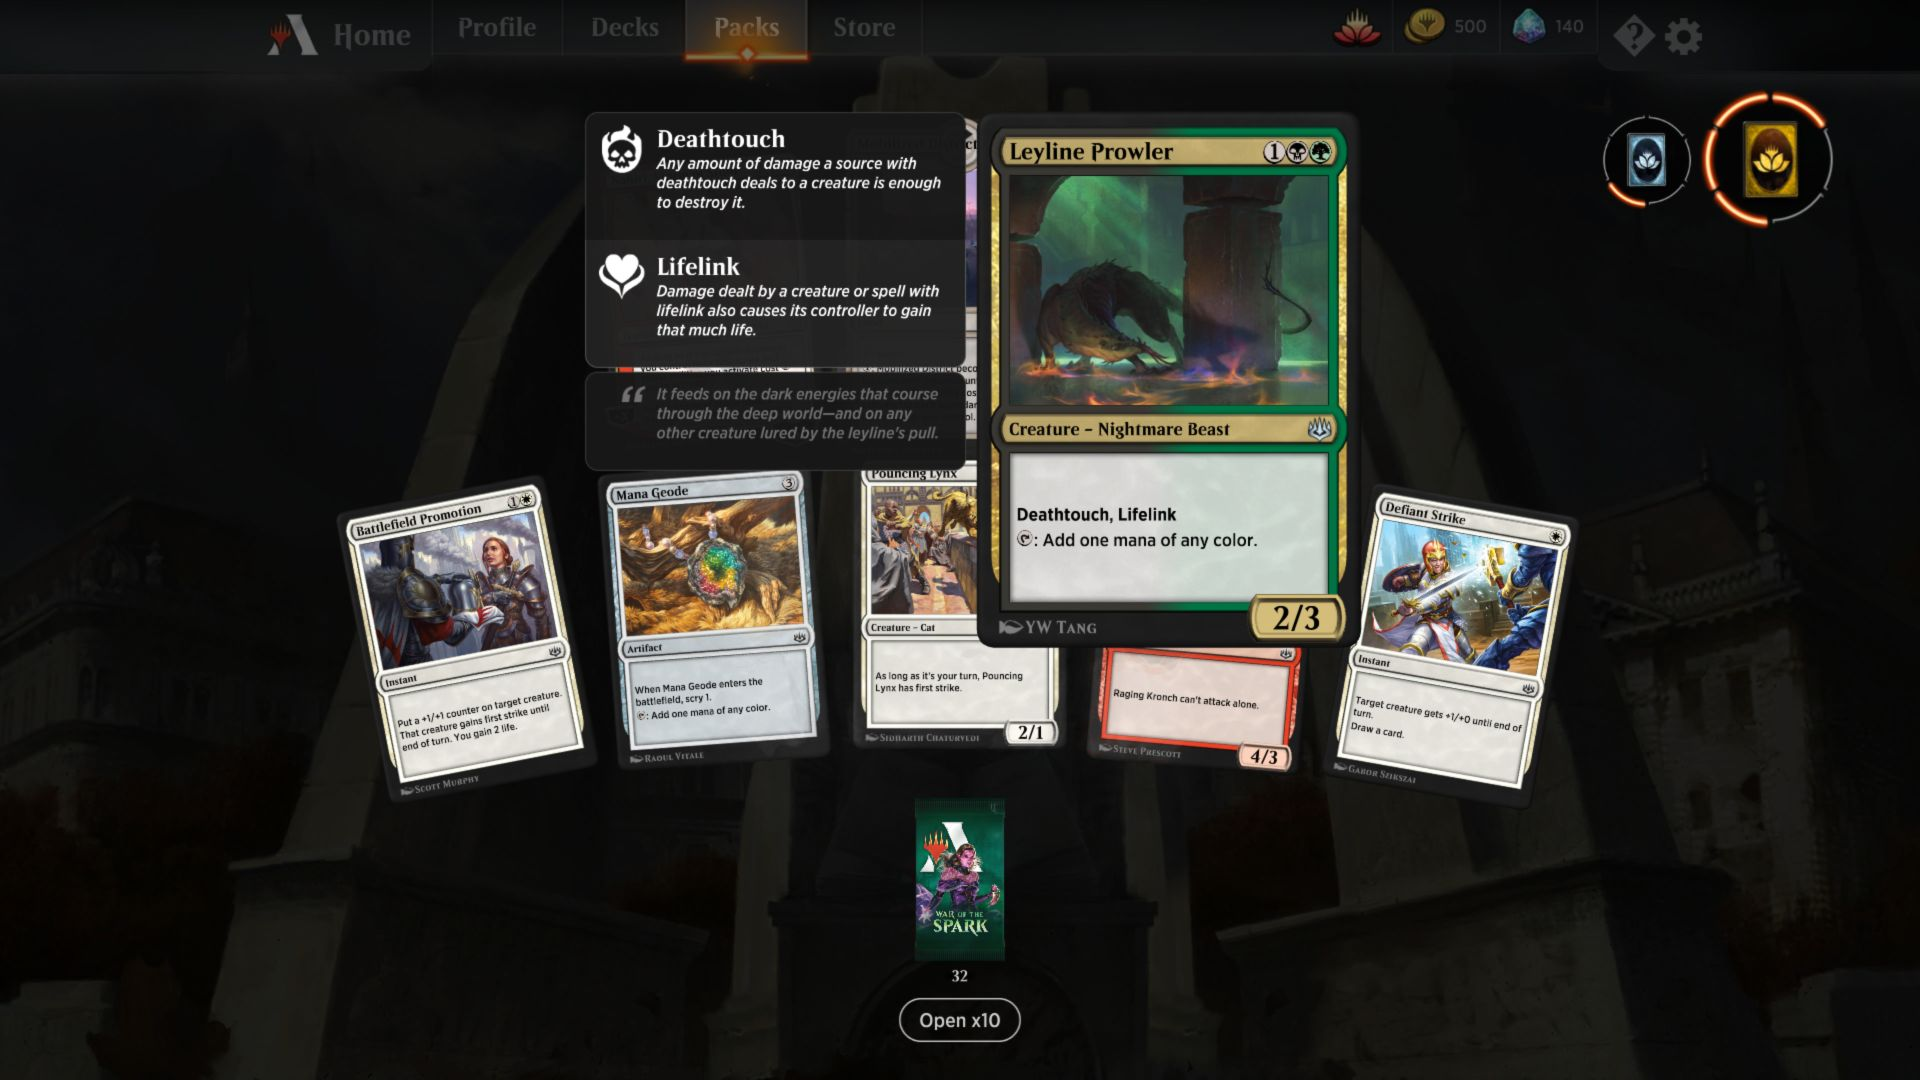 magic-the-gathering-arena-screenshot-2019-04-25-18-37-09-45